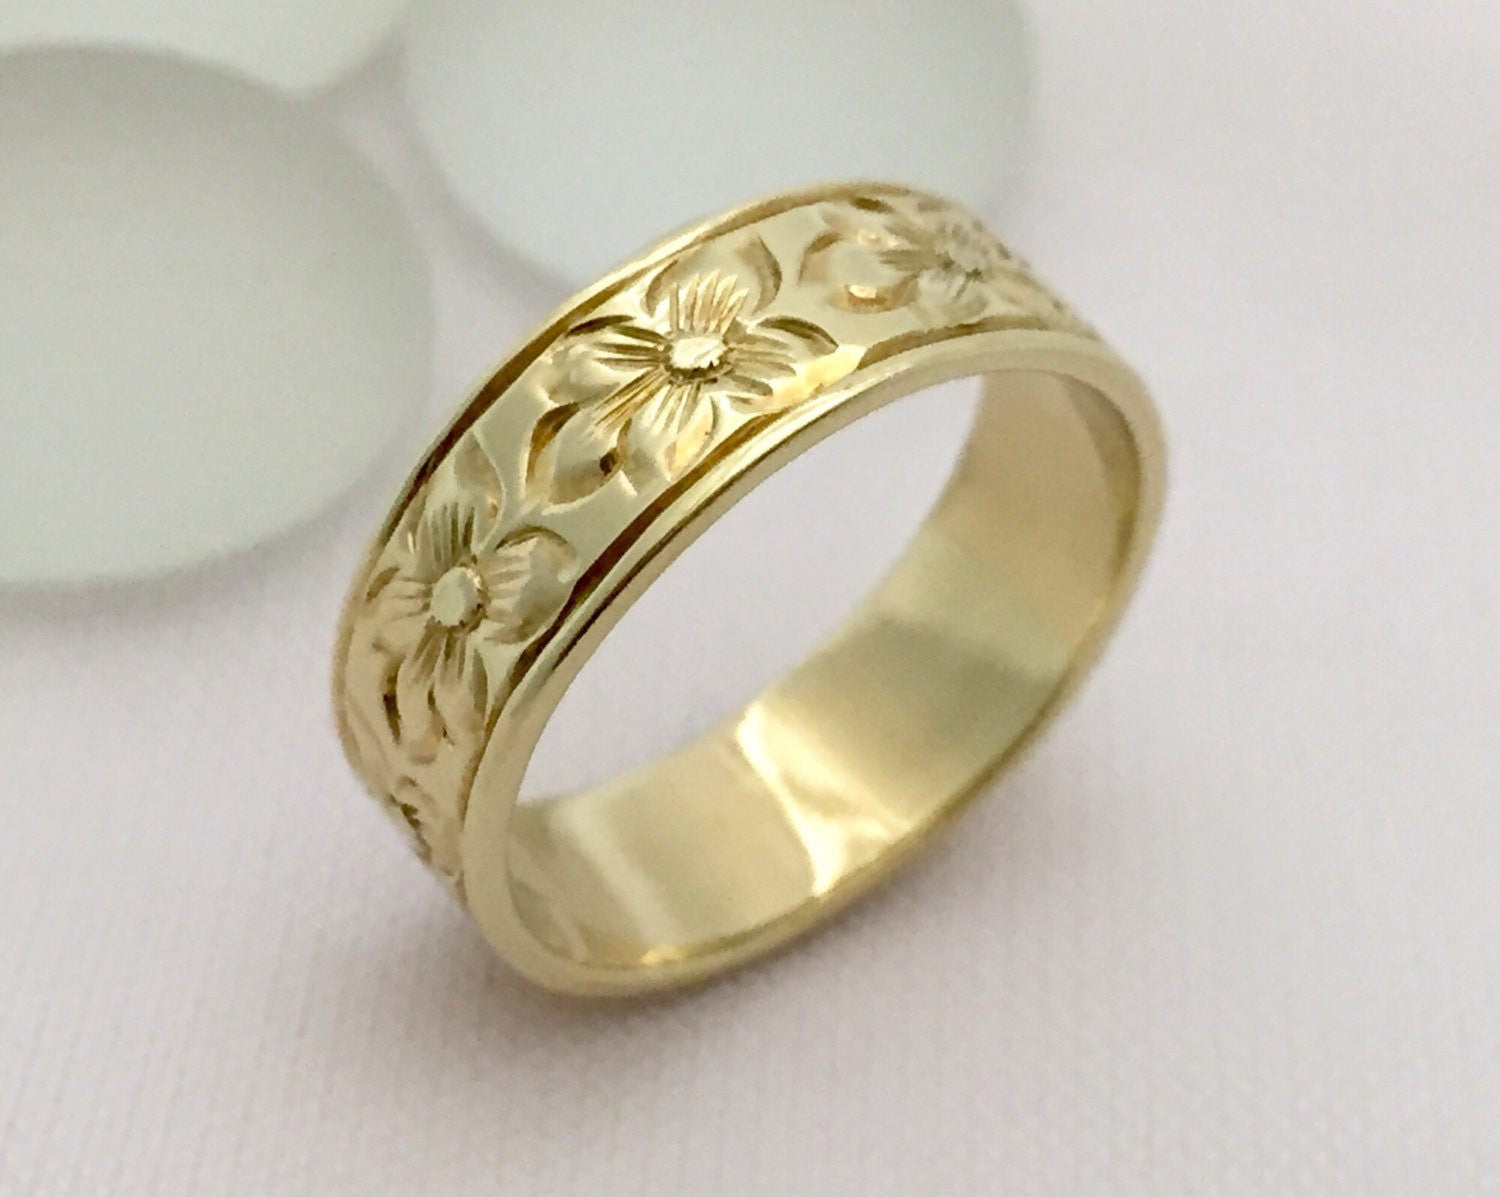 Traditional Hawaiian Hand Engraved 14K Gold (6mm Width Flat Ring) - Aolani Hawaii - 1